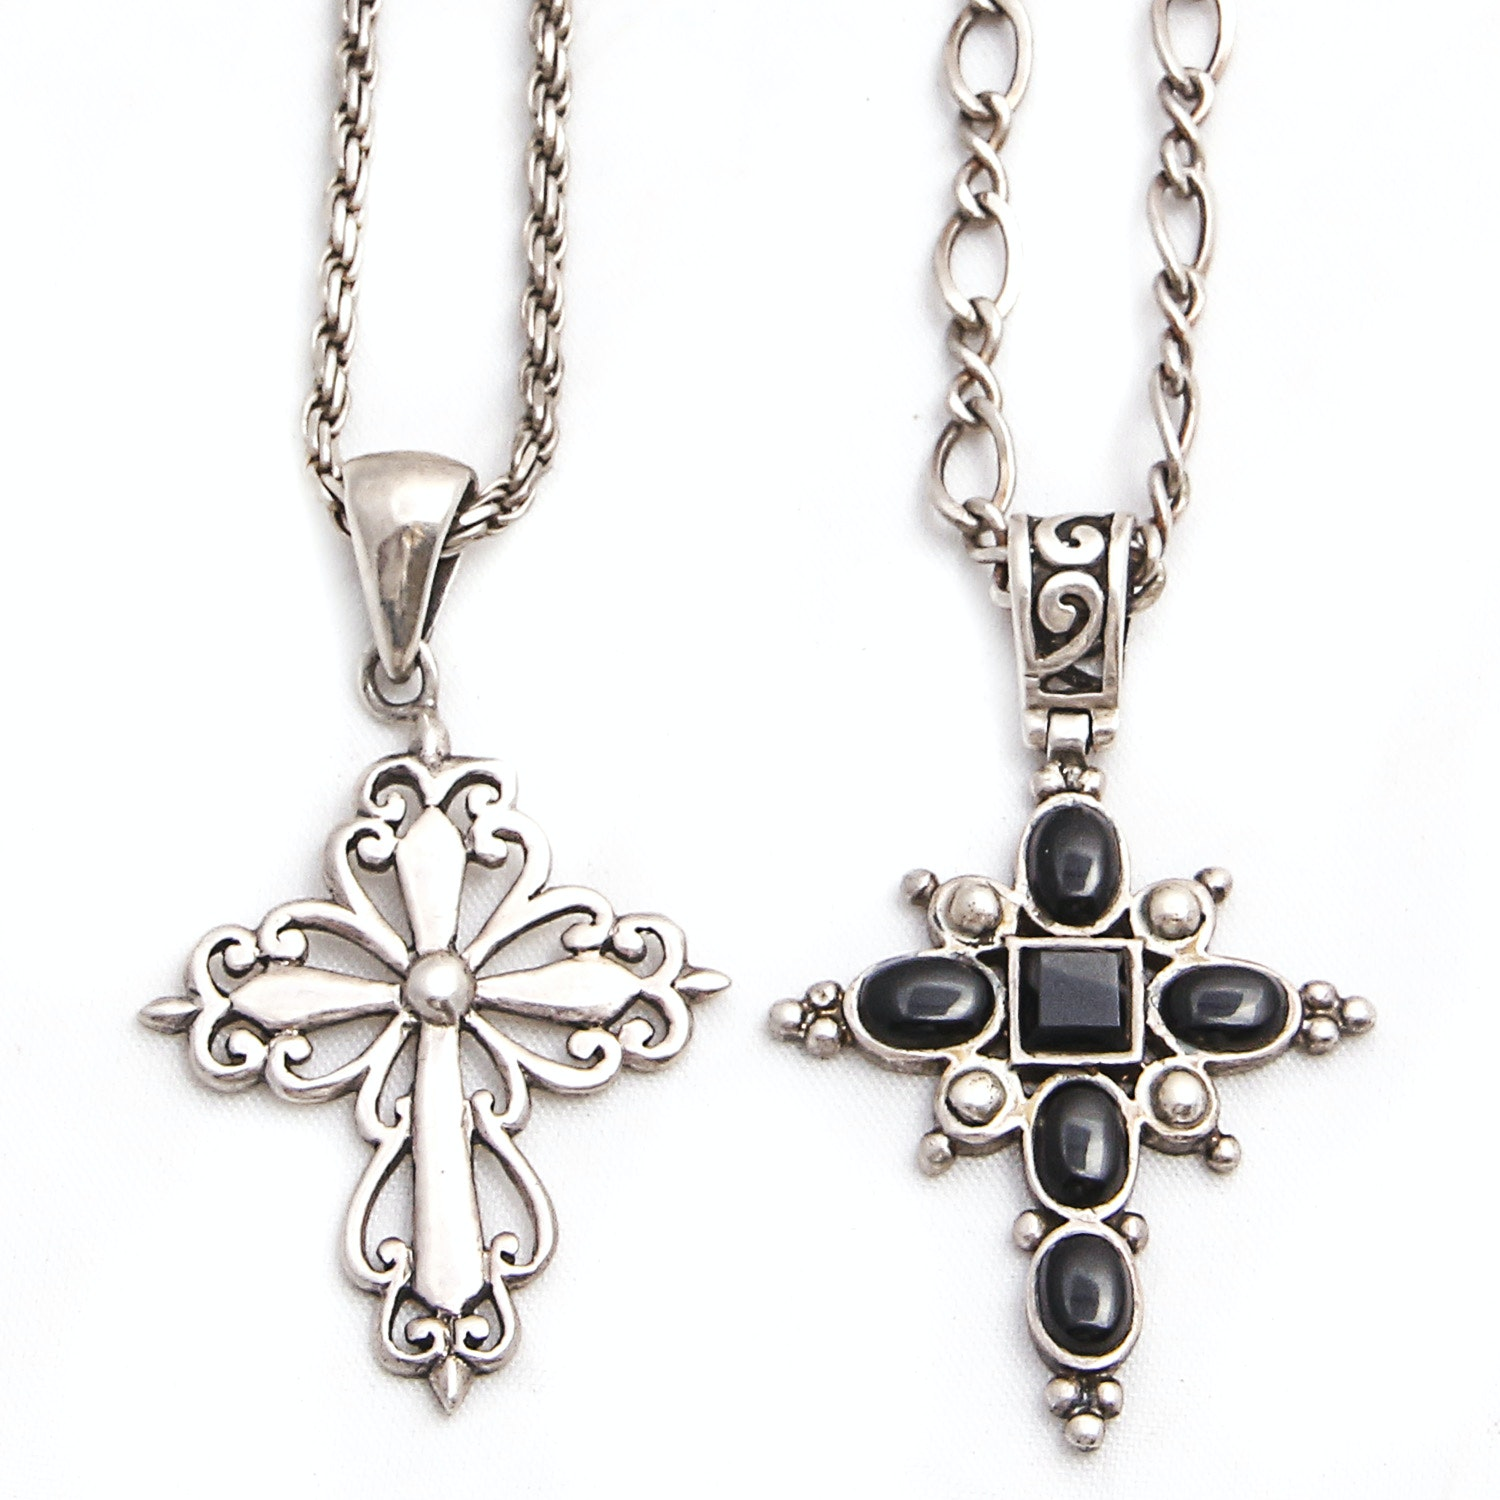 Sterling Silver Necklaces with Cross Pendants